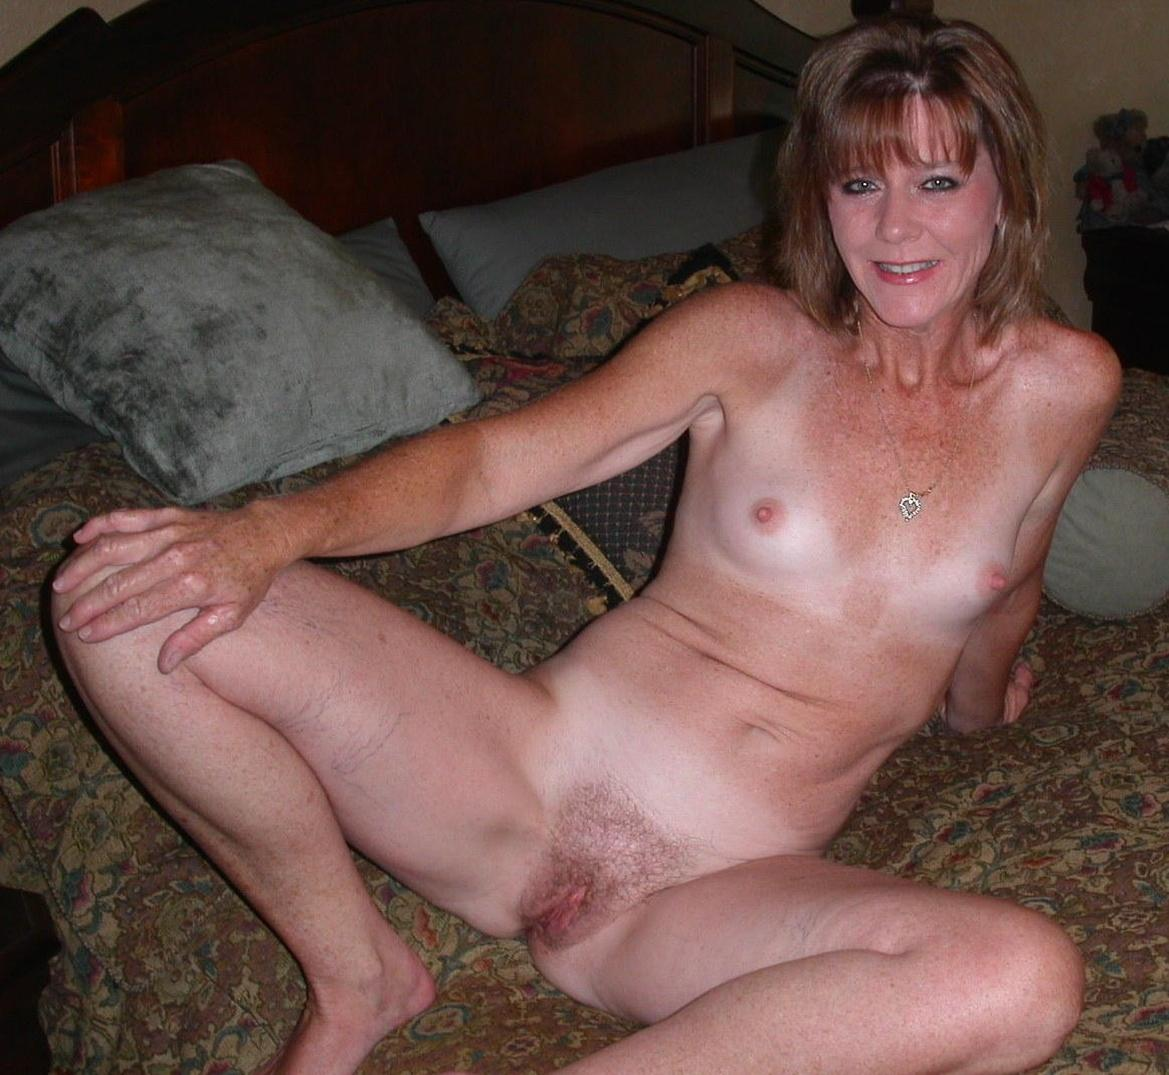 Old sluts pictures nudist only the